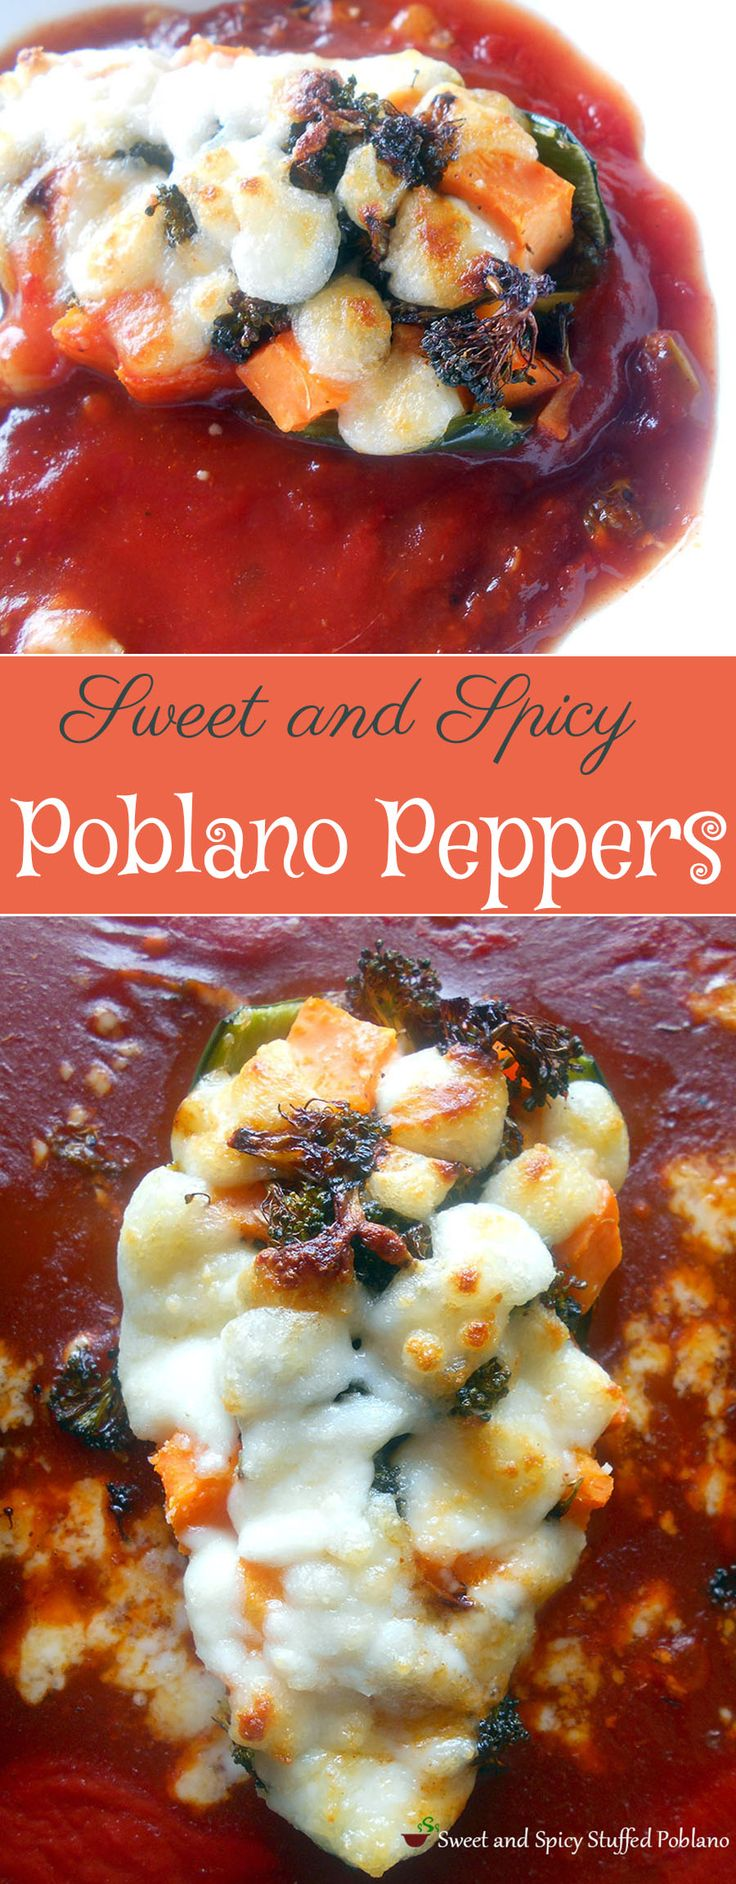 This is a quick lunch idea or even a side meal for dinner.  Poblanos are stuffed with sweet potatoes, broccoli and topped with Cacique Cheese.  Placed in a bed of Enchilada sauce.  vegetarian recipe